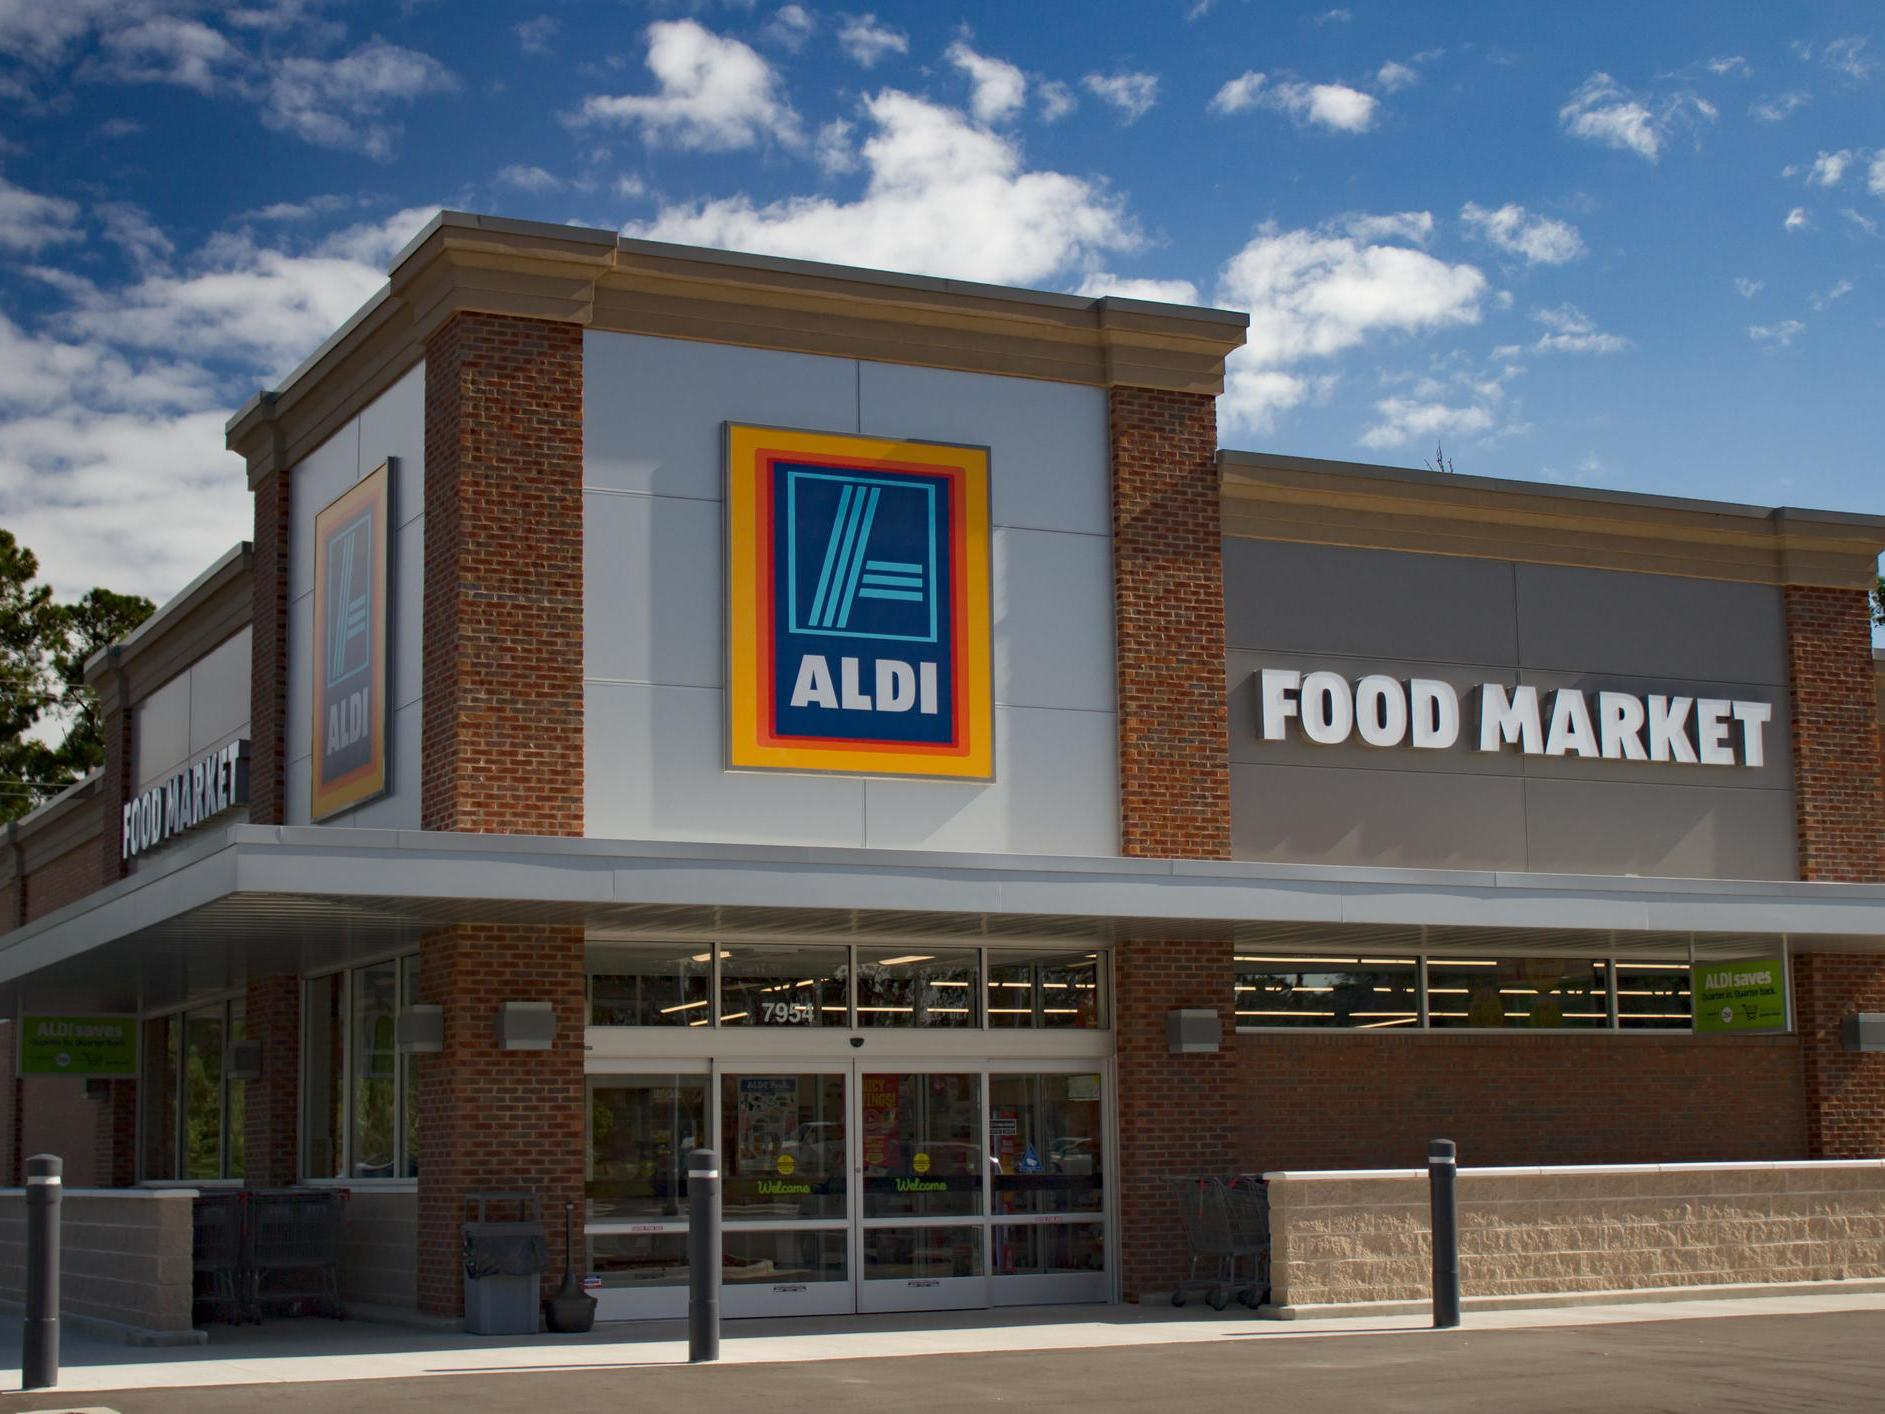 Aldi adds deliveries in tie-up with Deliveroo. But there's a catch